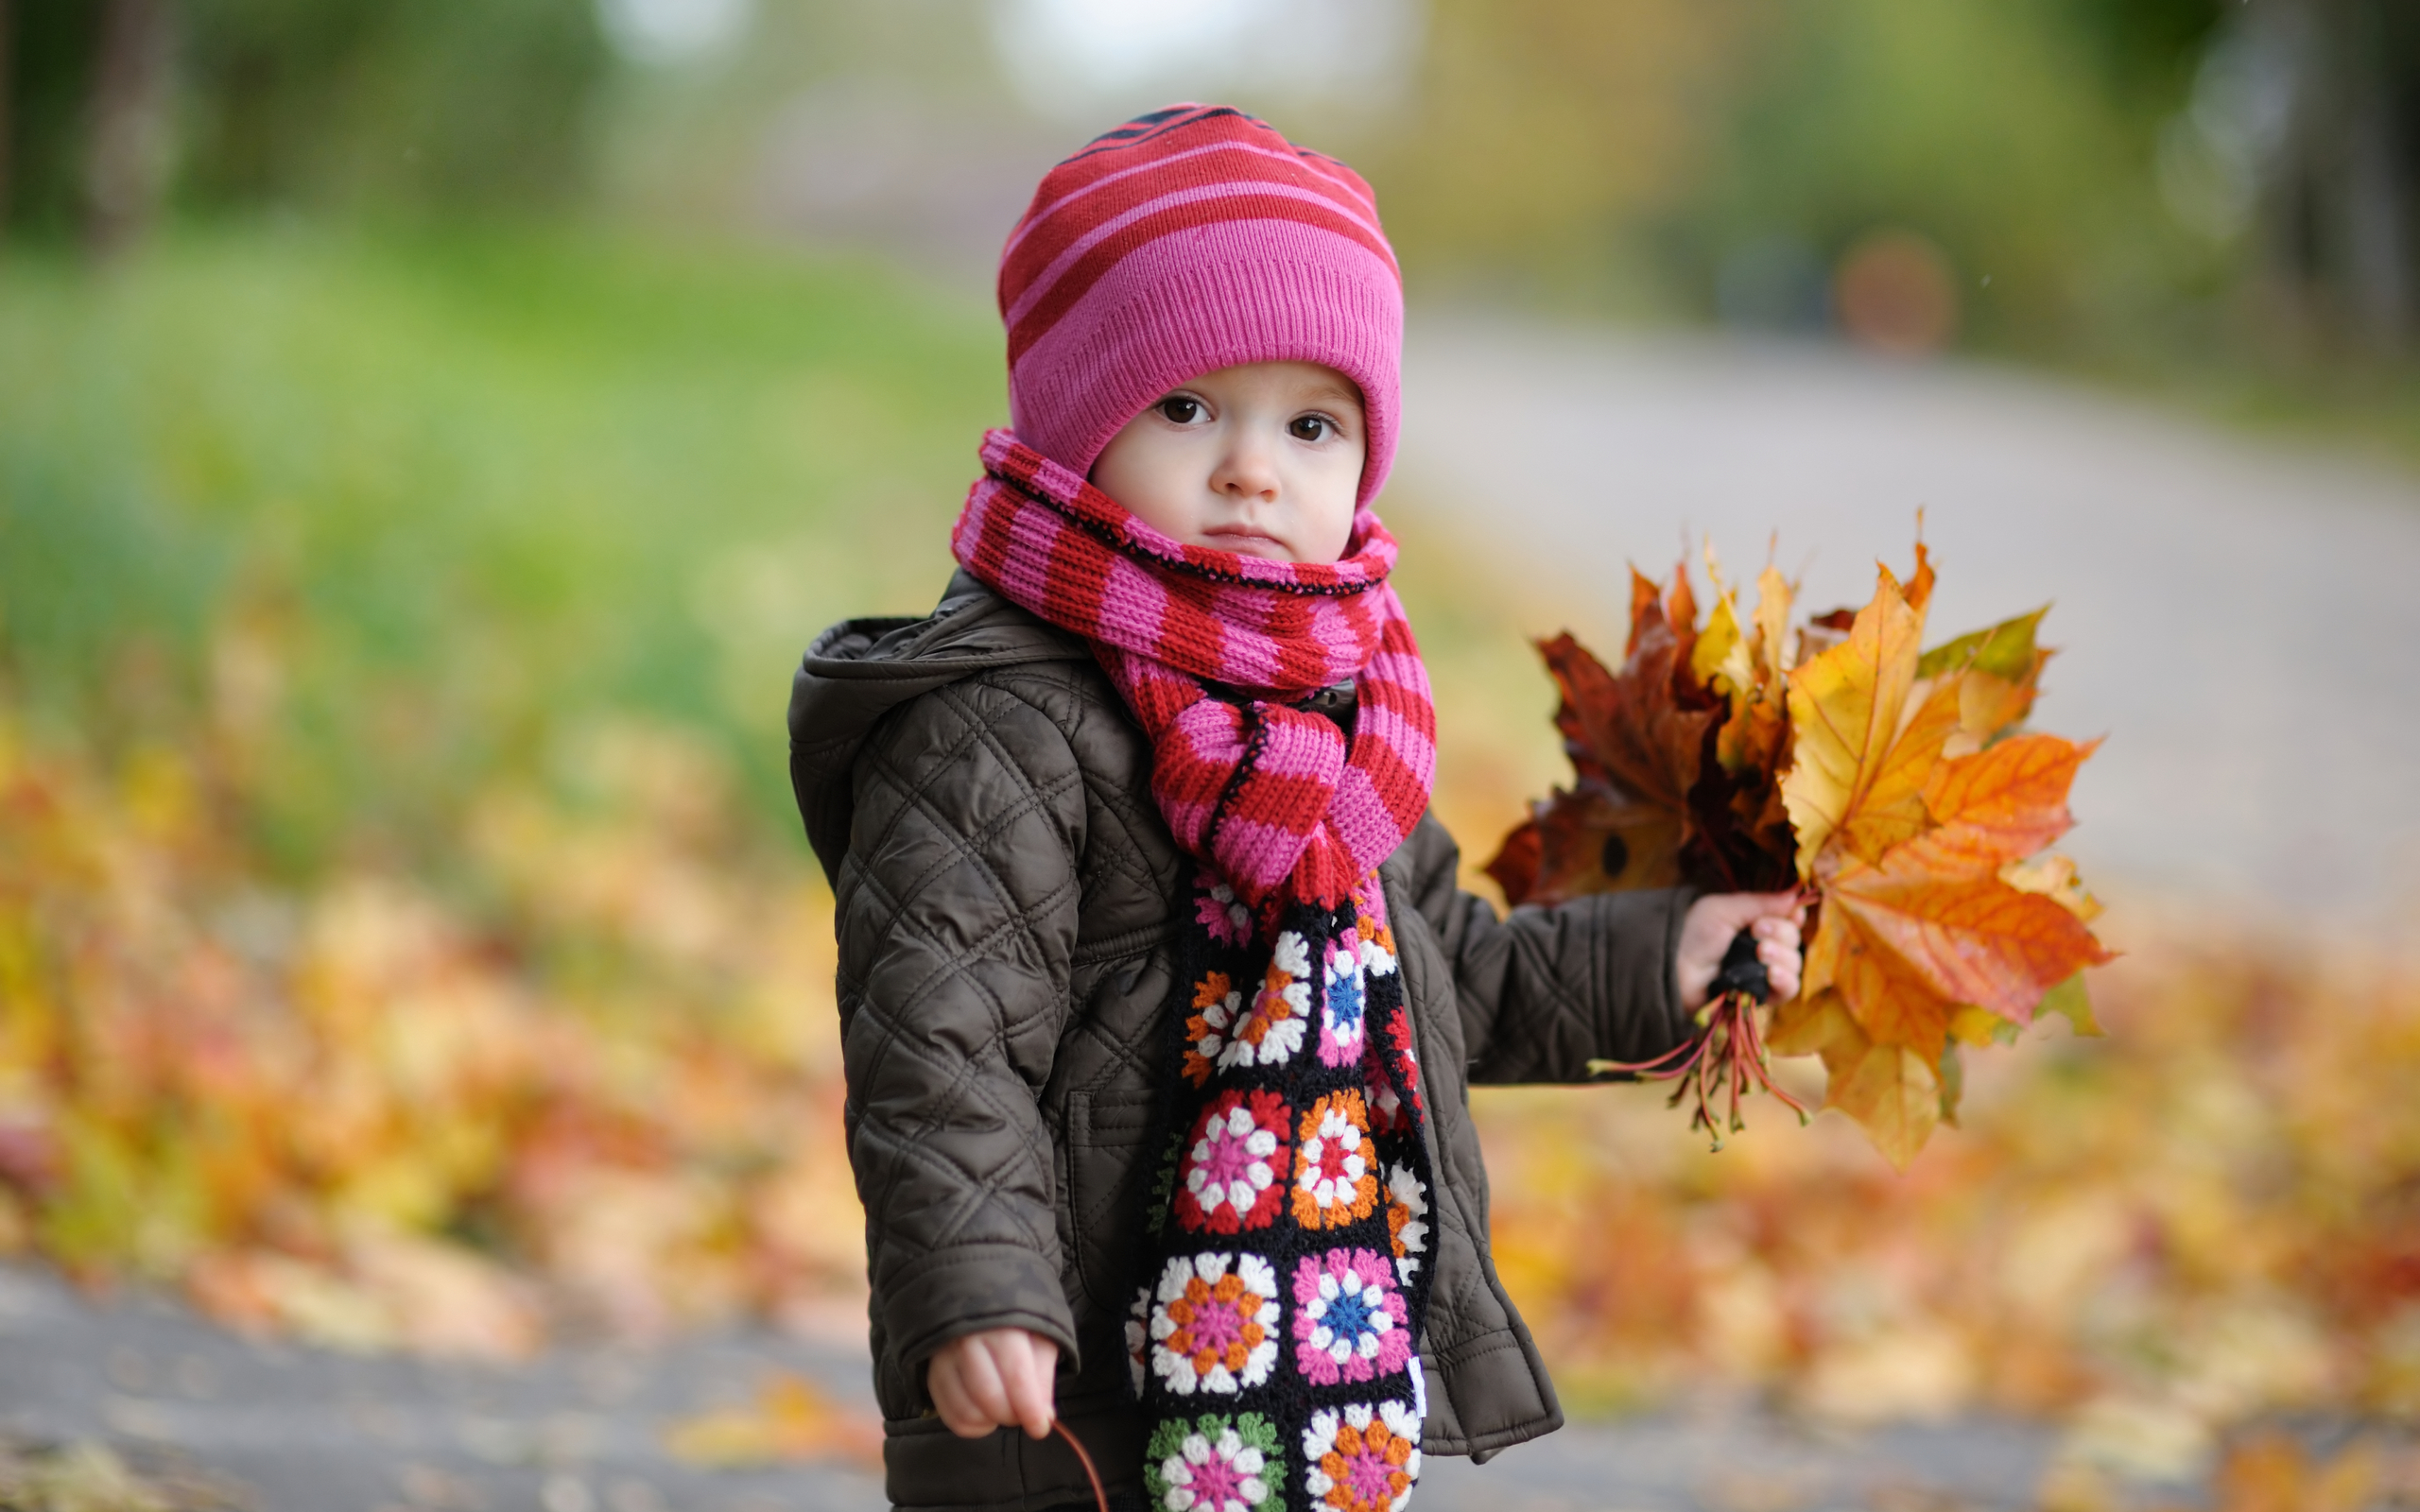 Wallpaper Of Babies: A Cute Baby In Autumn With Yellow Leaves ,click Wallpaper